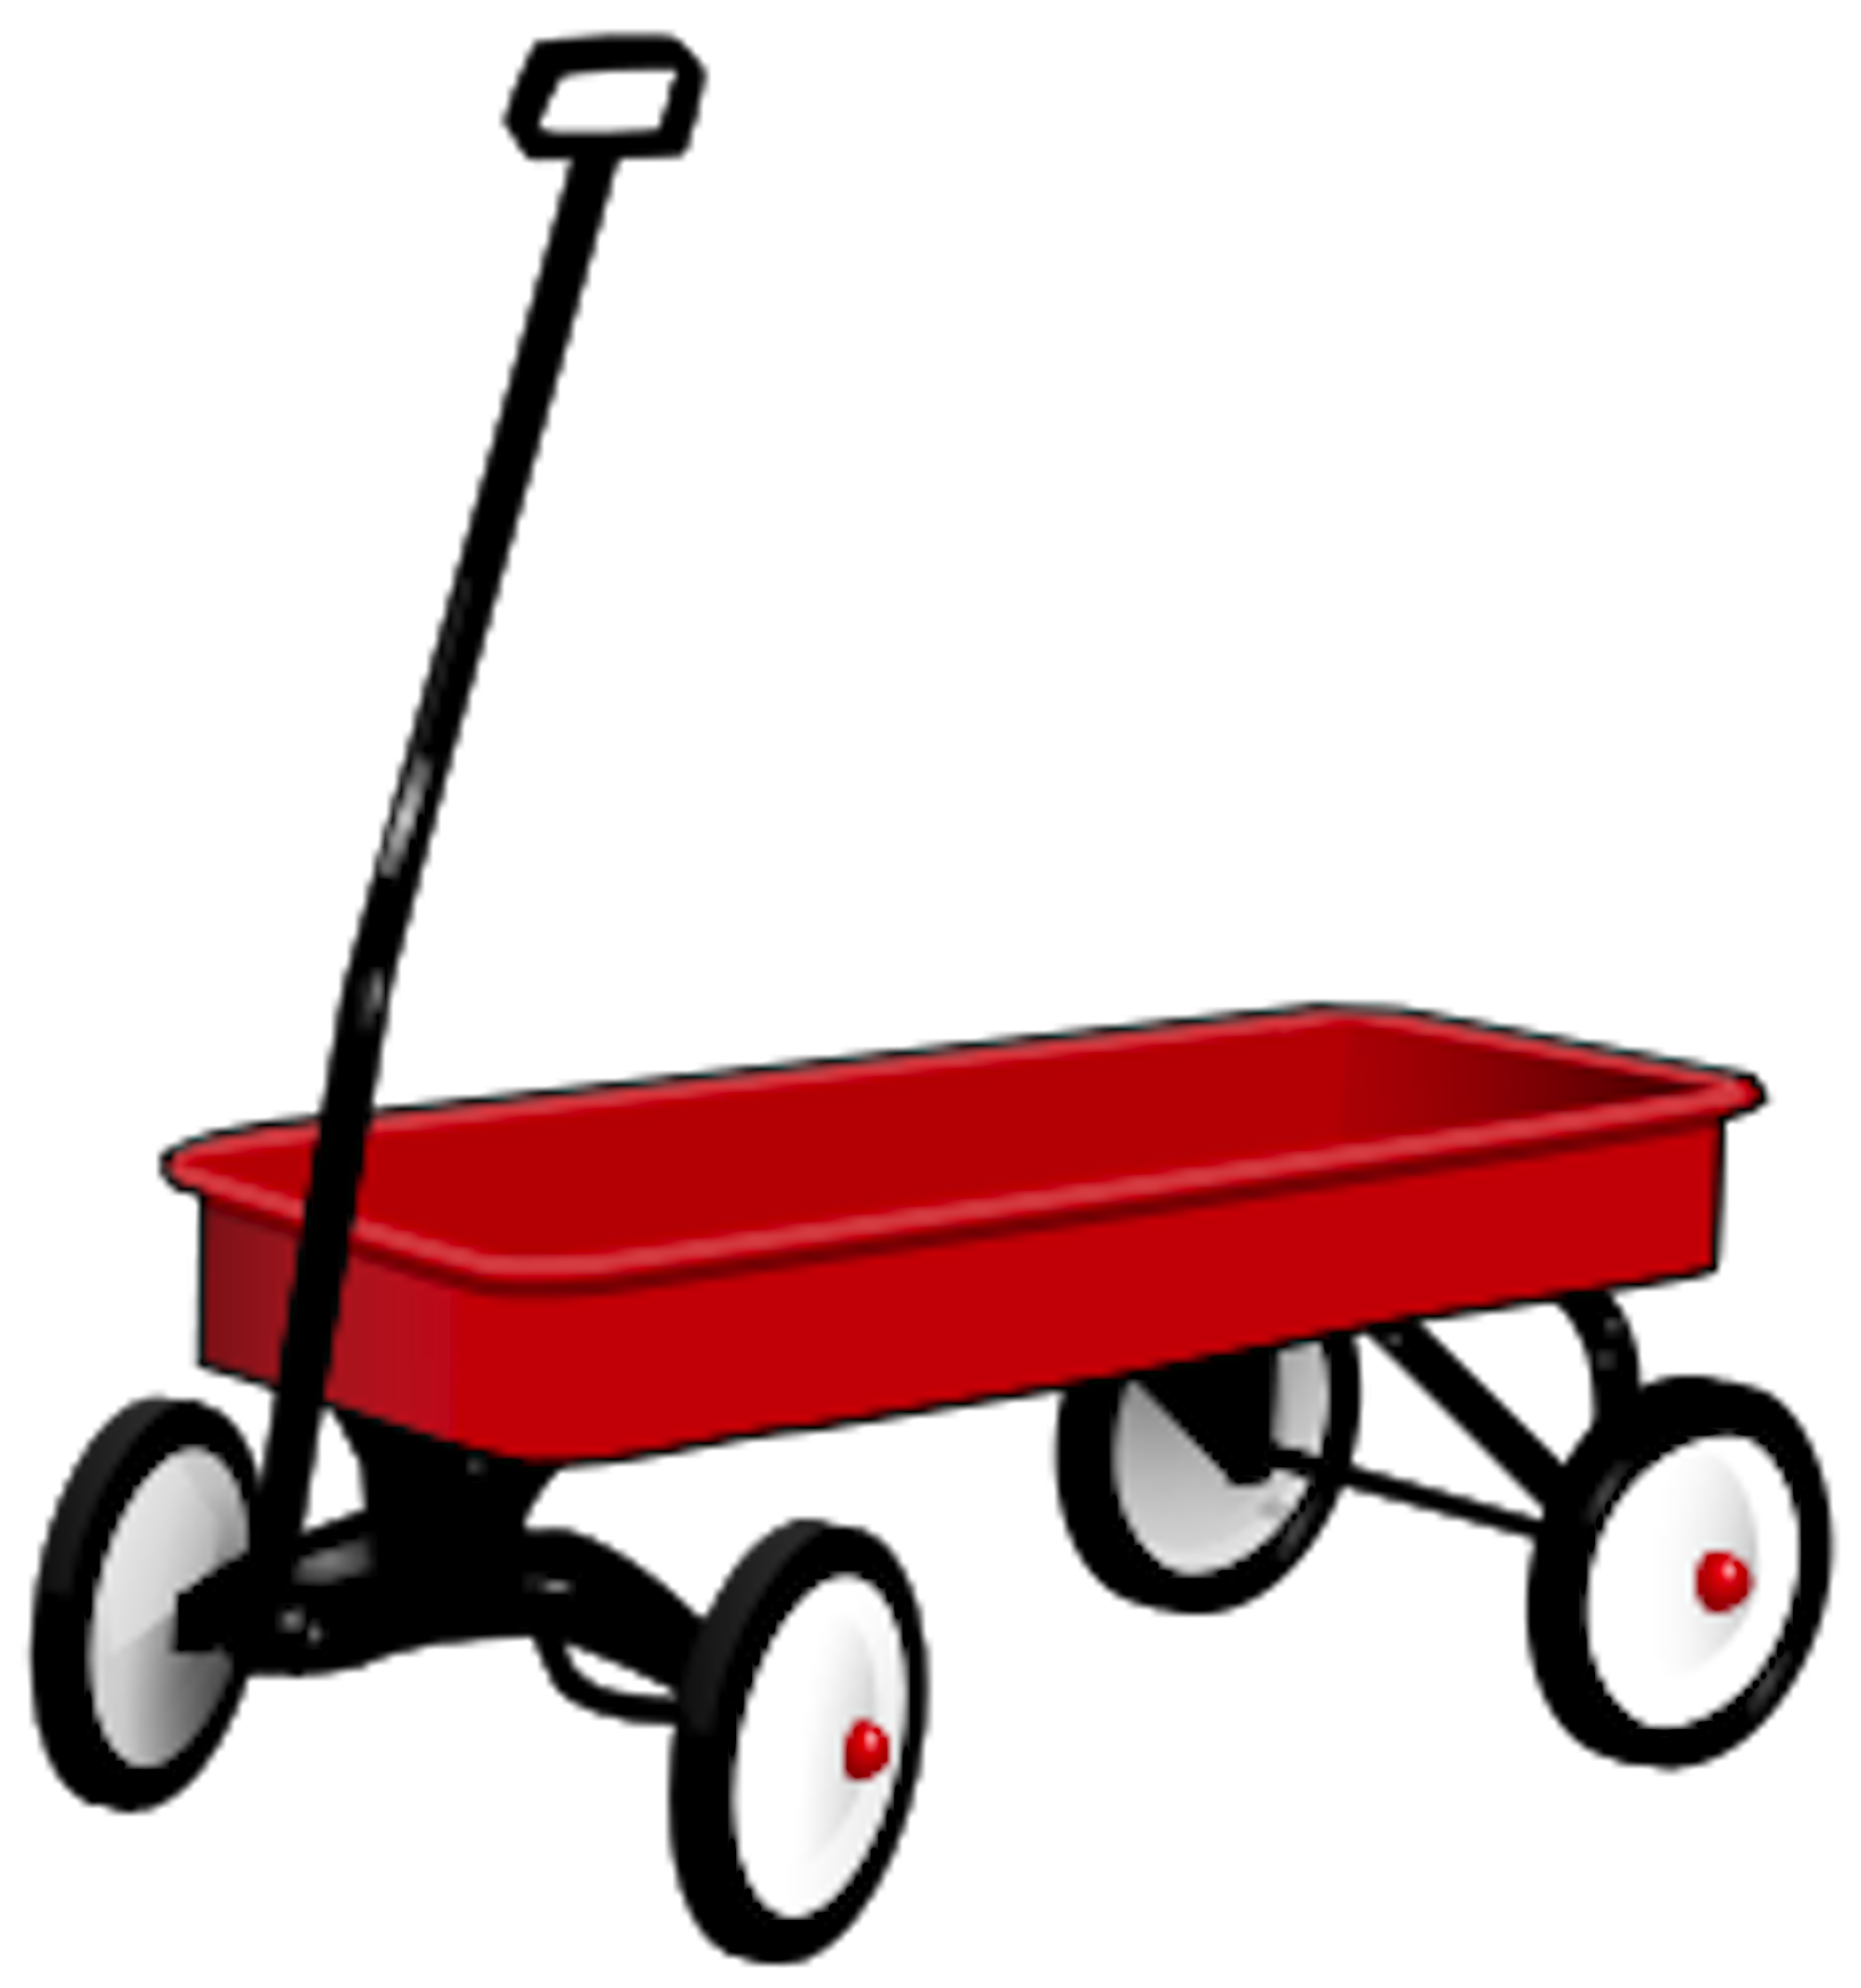 Red Wagon Clip Art Red wagon pictures - clipart | Wagon Study in ... clipart royalty free download